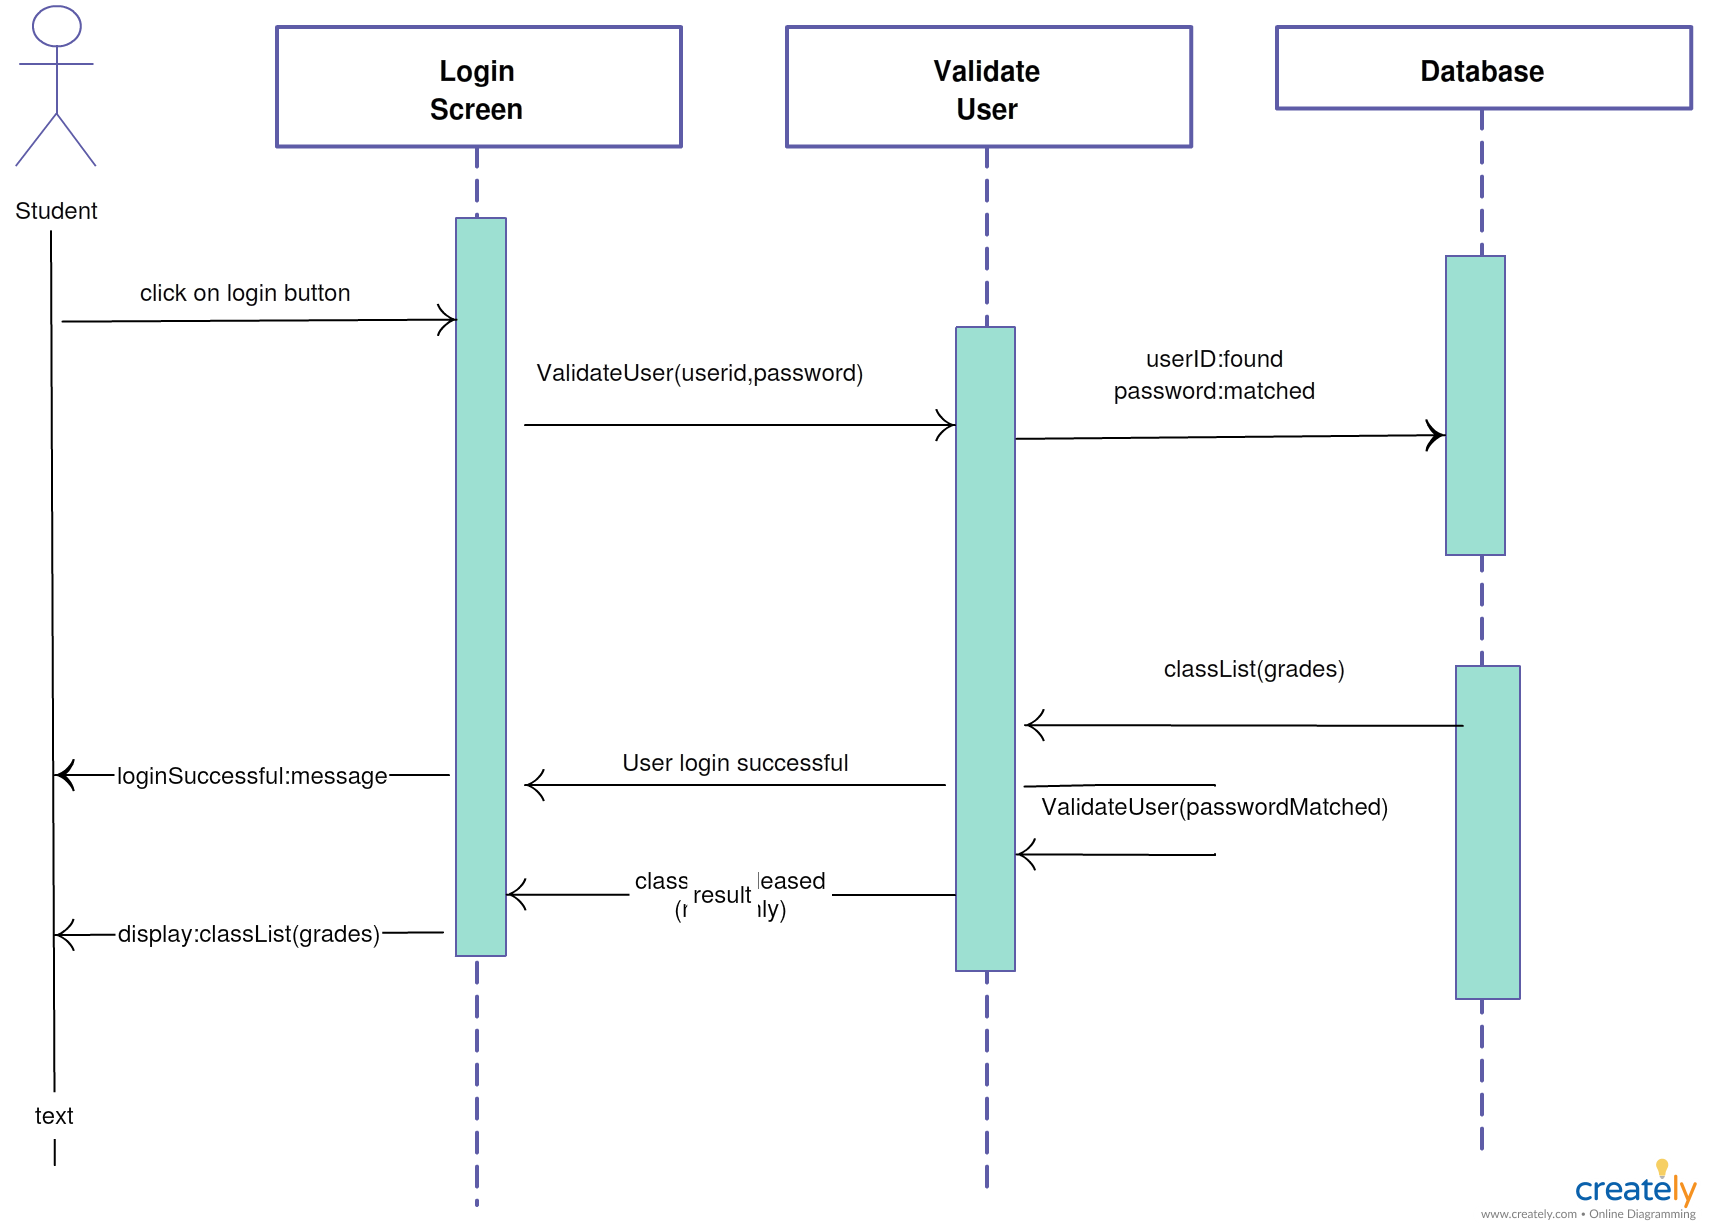 Student Login Sequence Diagram